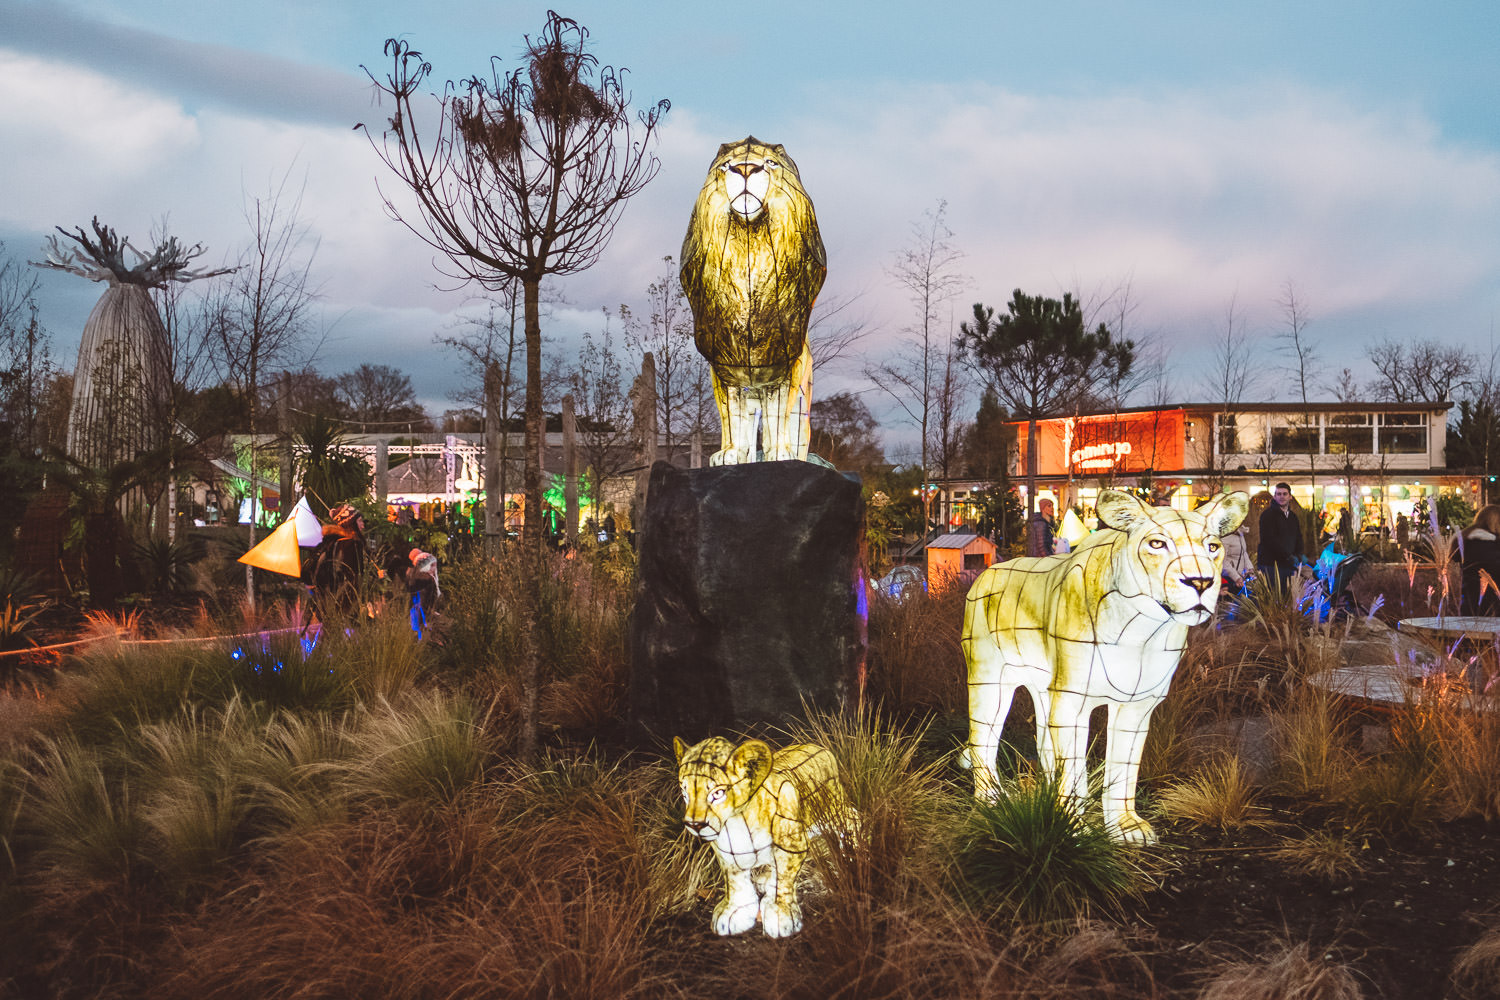 cocktail_saturdays_the_lanterns_at_chester_zoo-7799.jpg